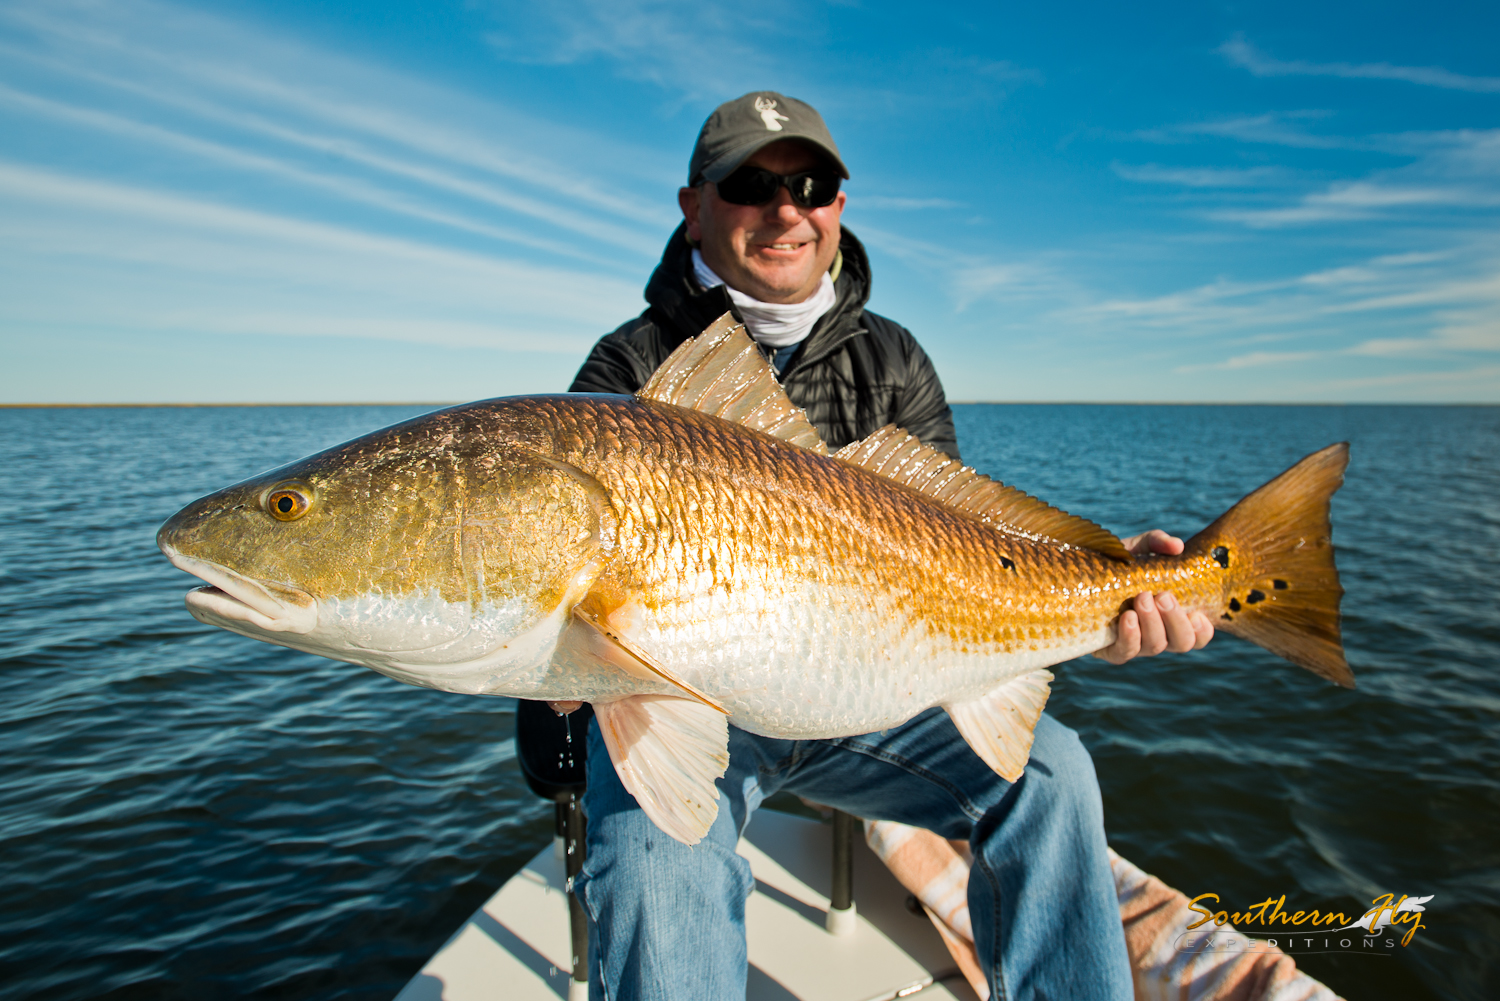 Fly Fishing Charter Southern Fly Expeditions